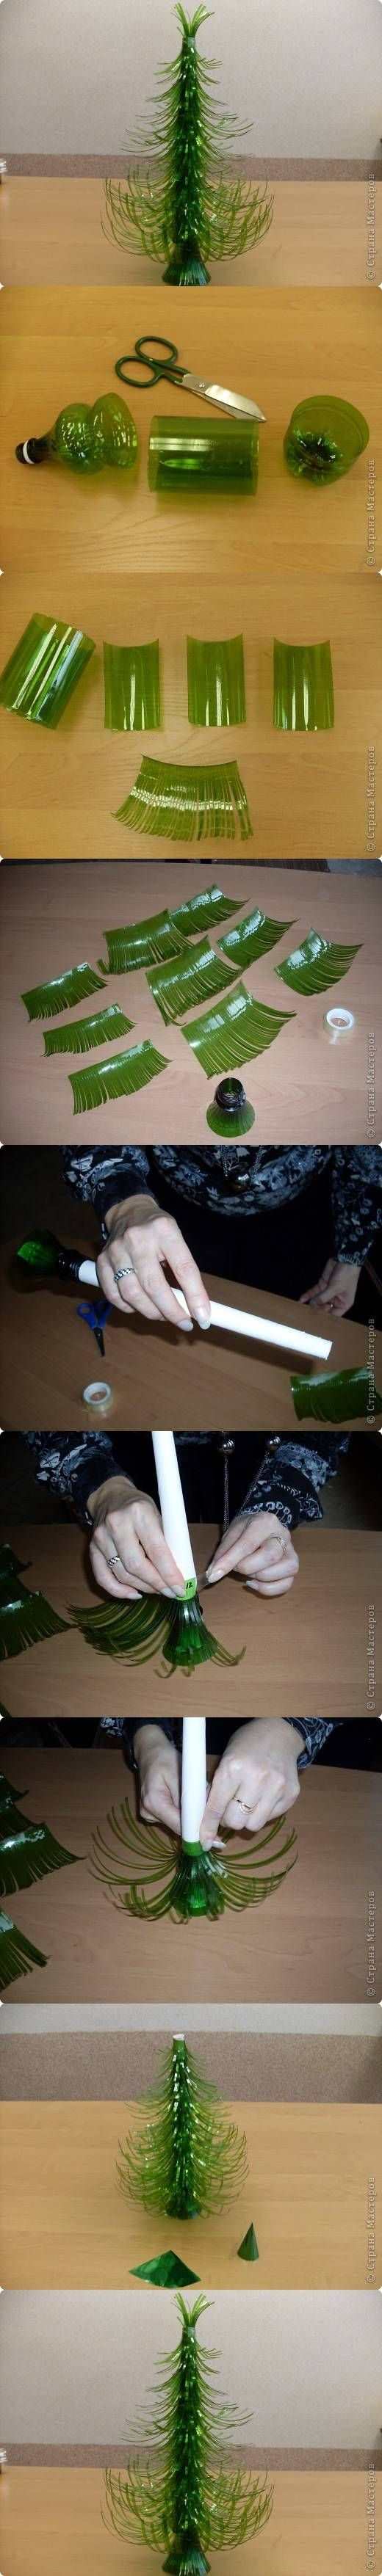 AMAZING Plastic Bottle Christmas Trees ~~~ DIY Projects | UsefulDIY.com Follow Us on Facebook ==> http://www.facebook.com/UsefulDiy